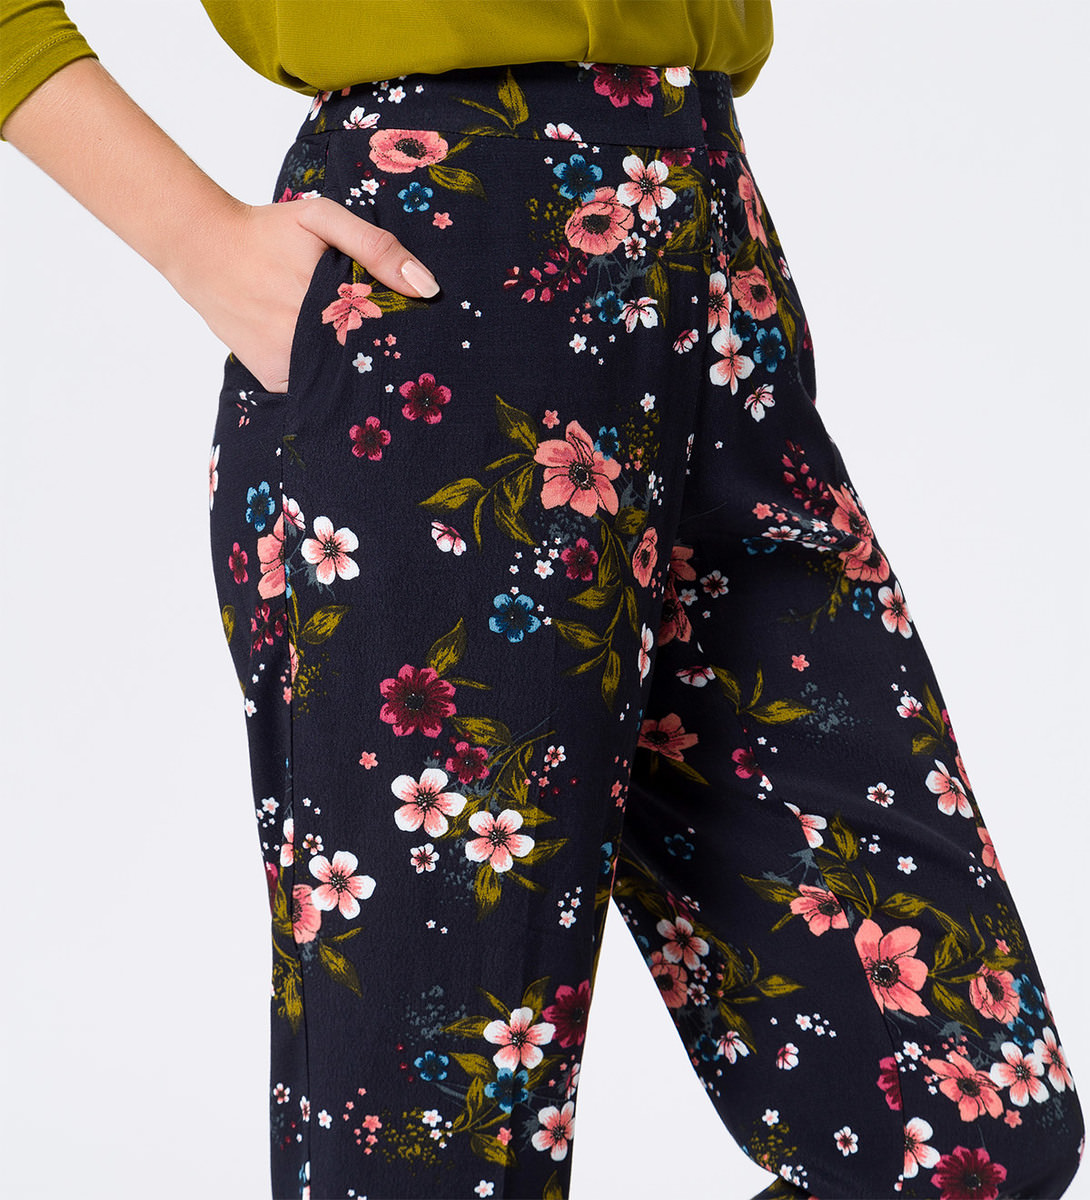 Hose im floralen Design in blue black